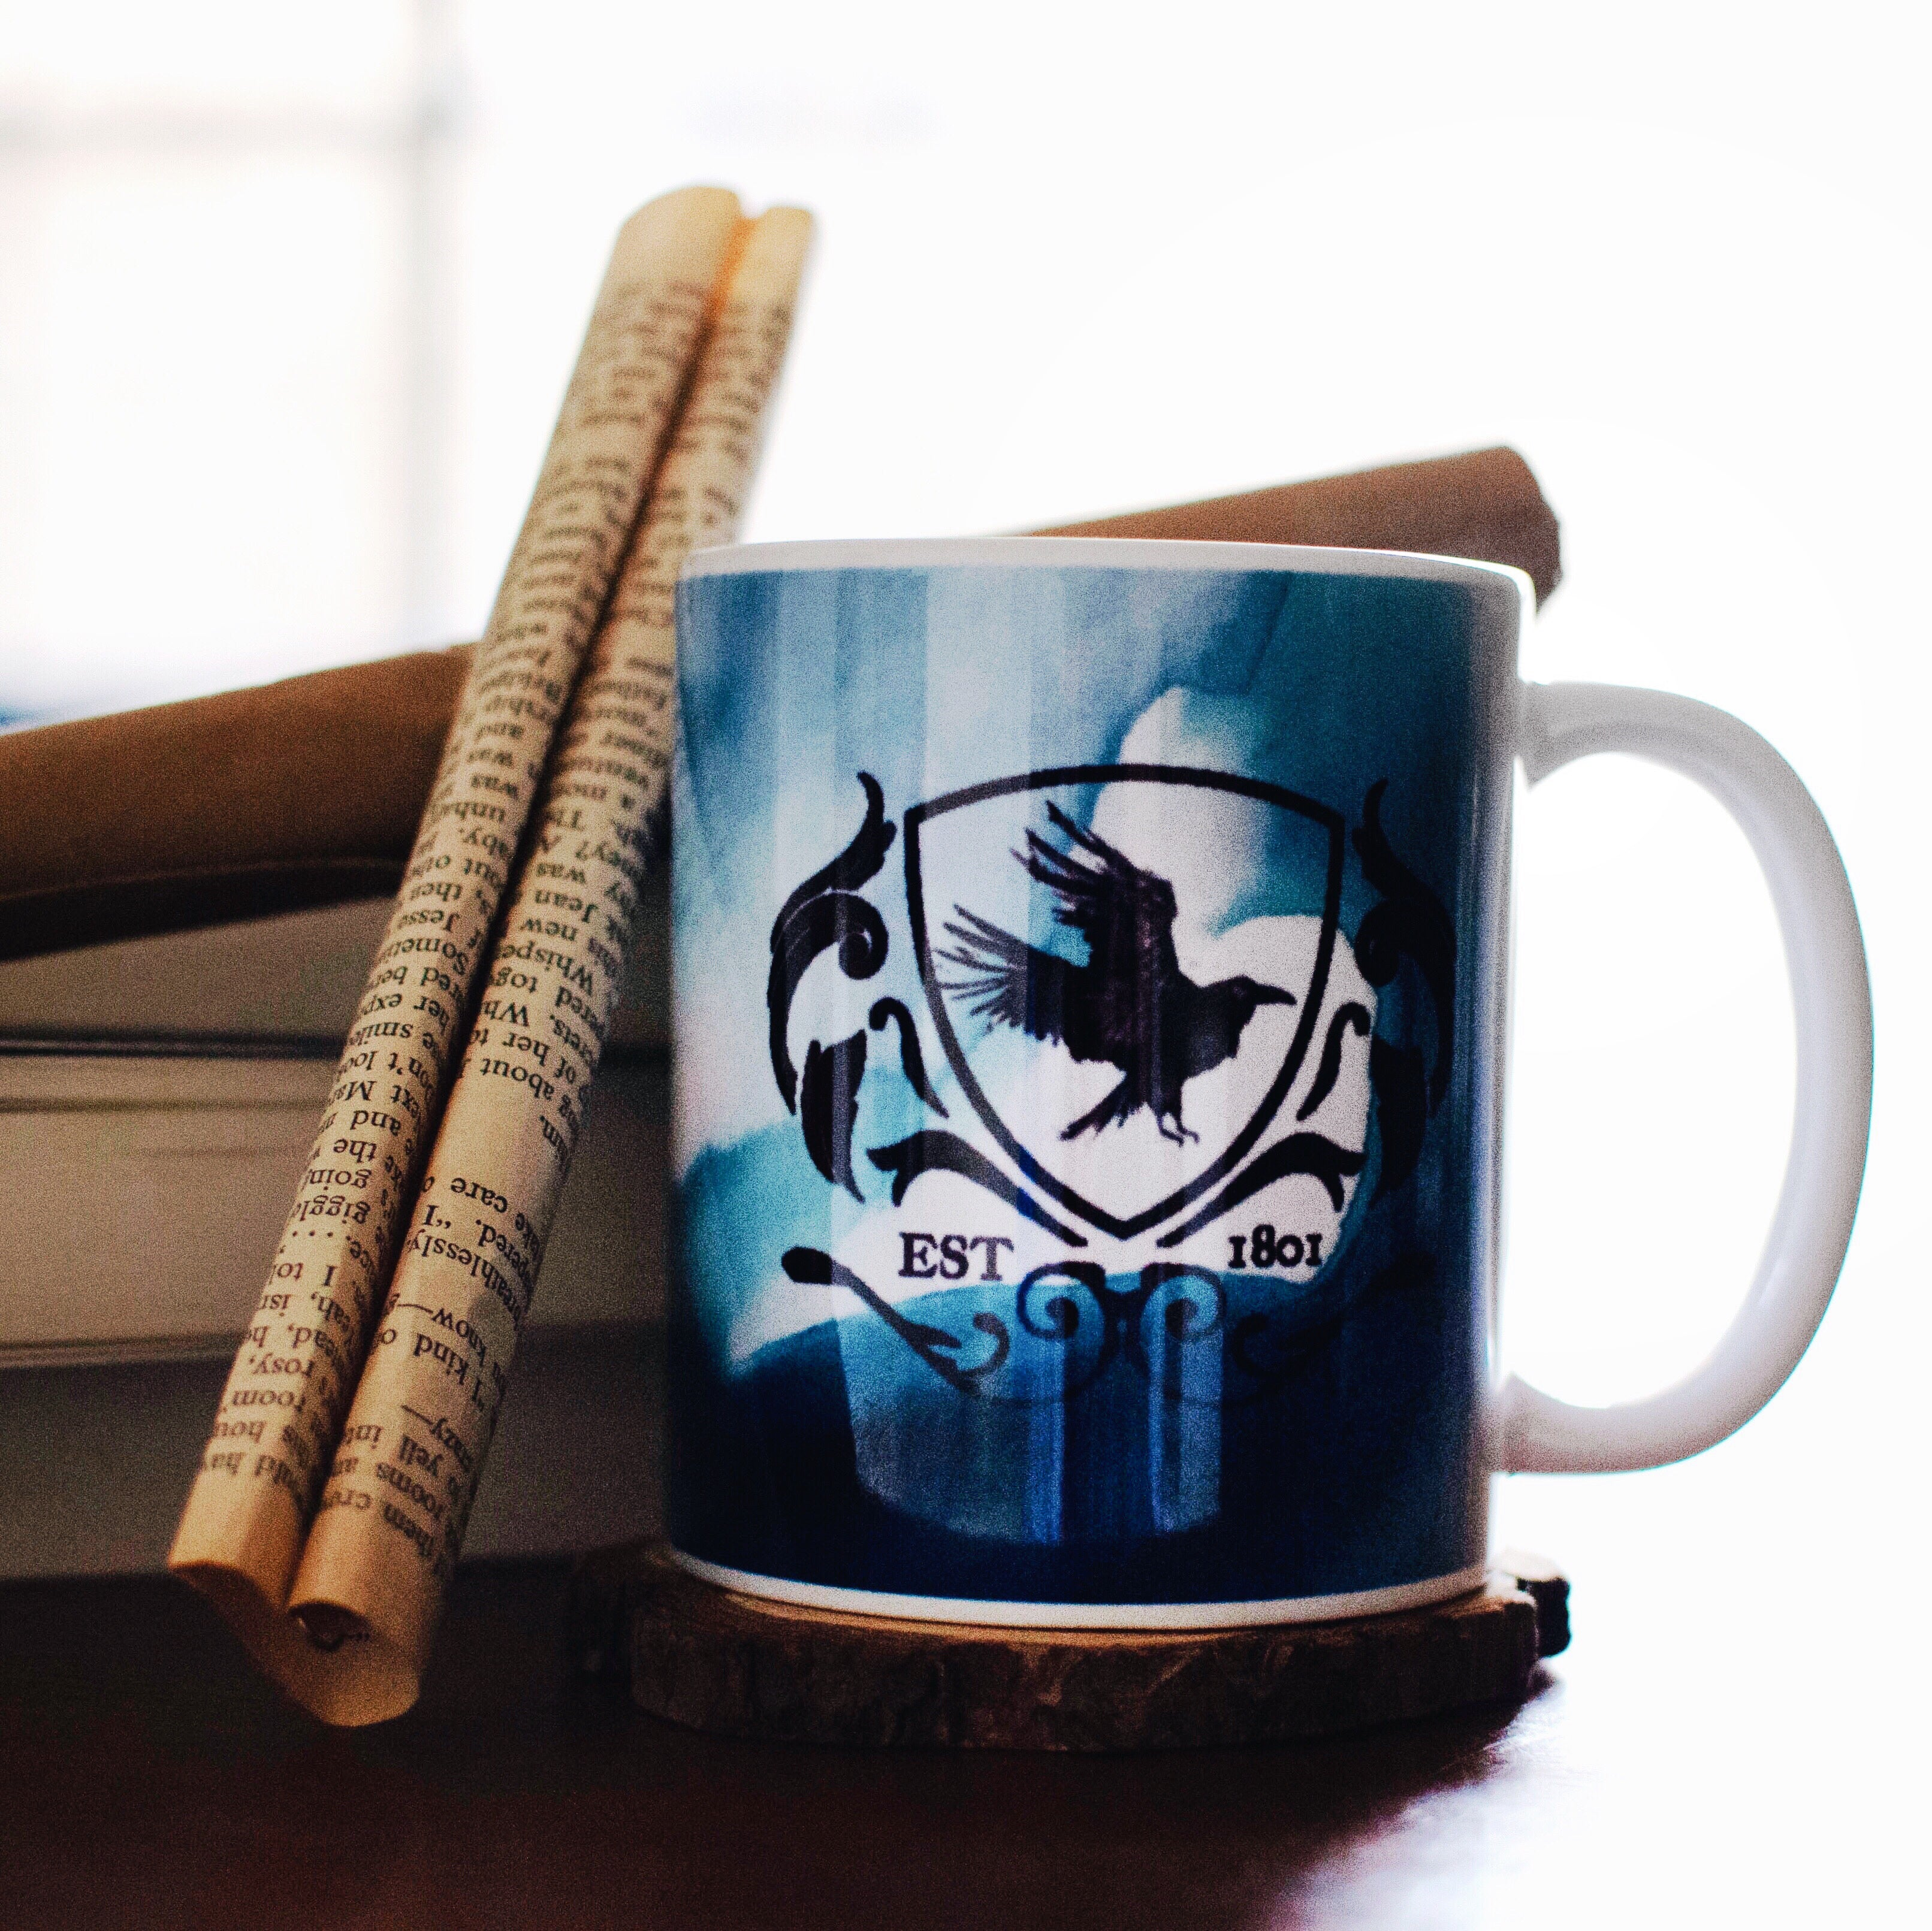 The Raven Cycles inspired mug